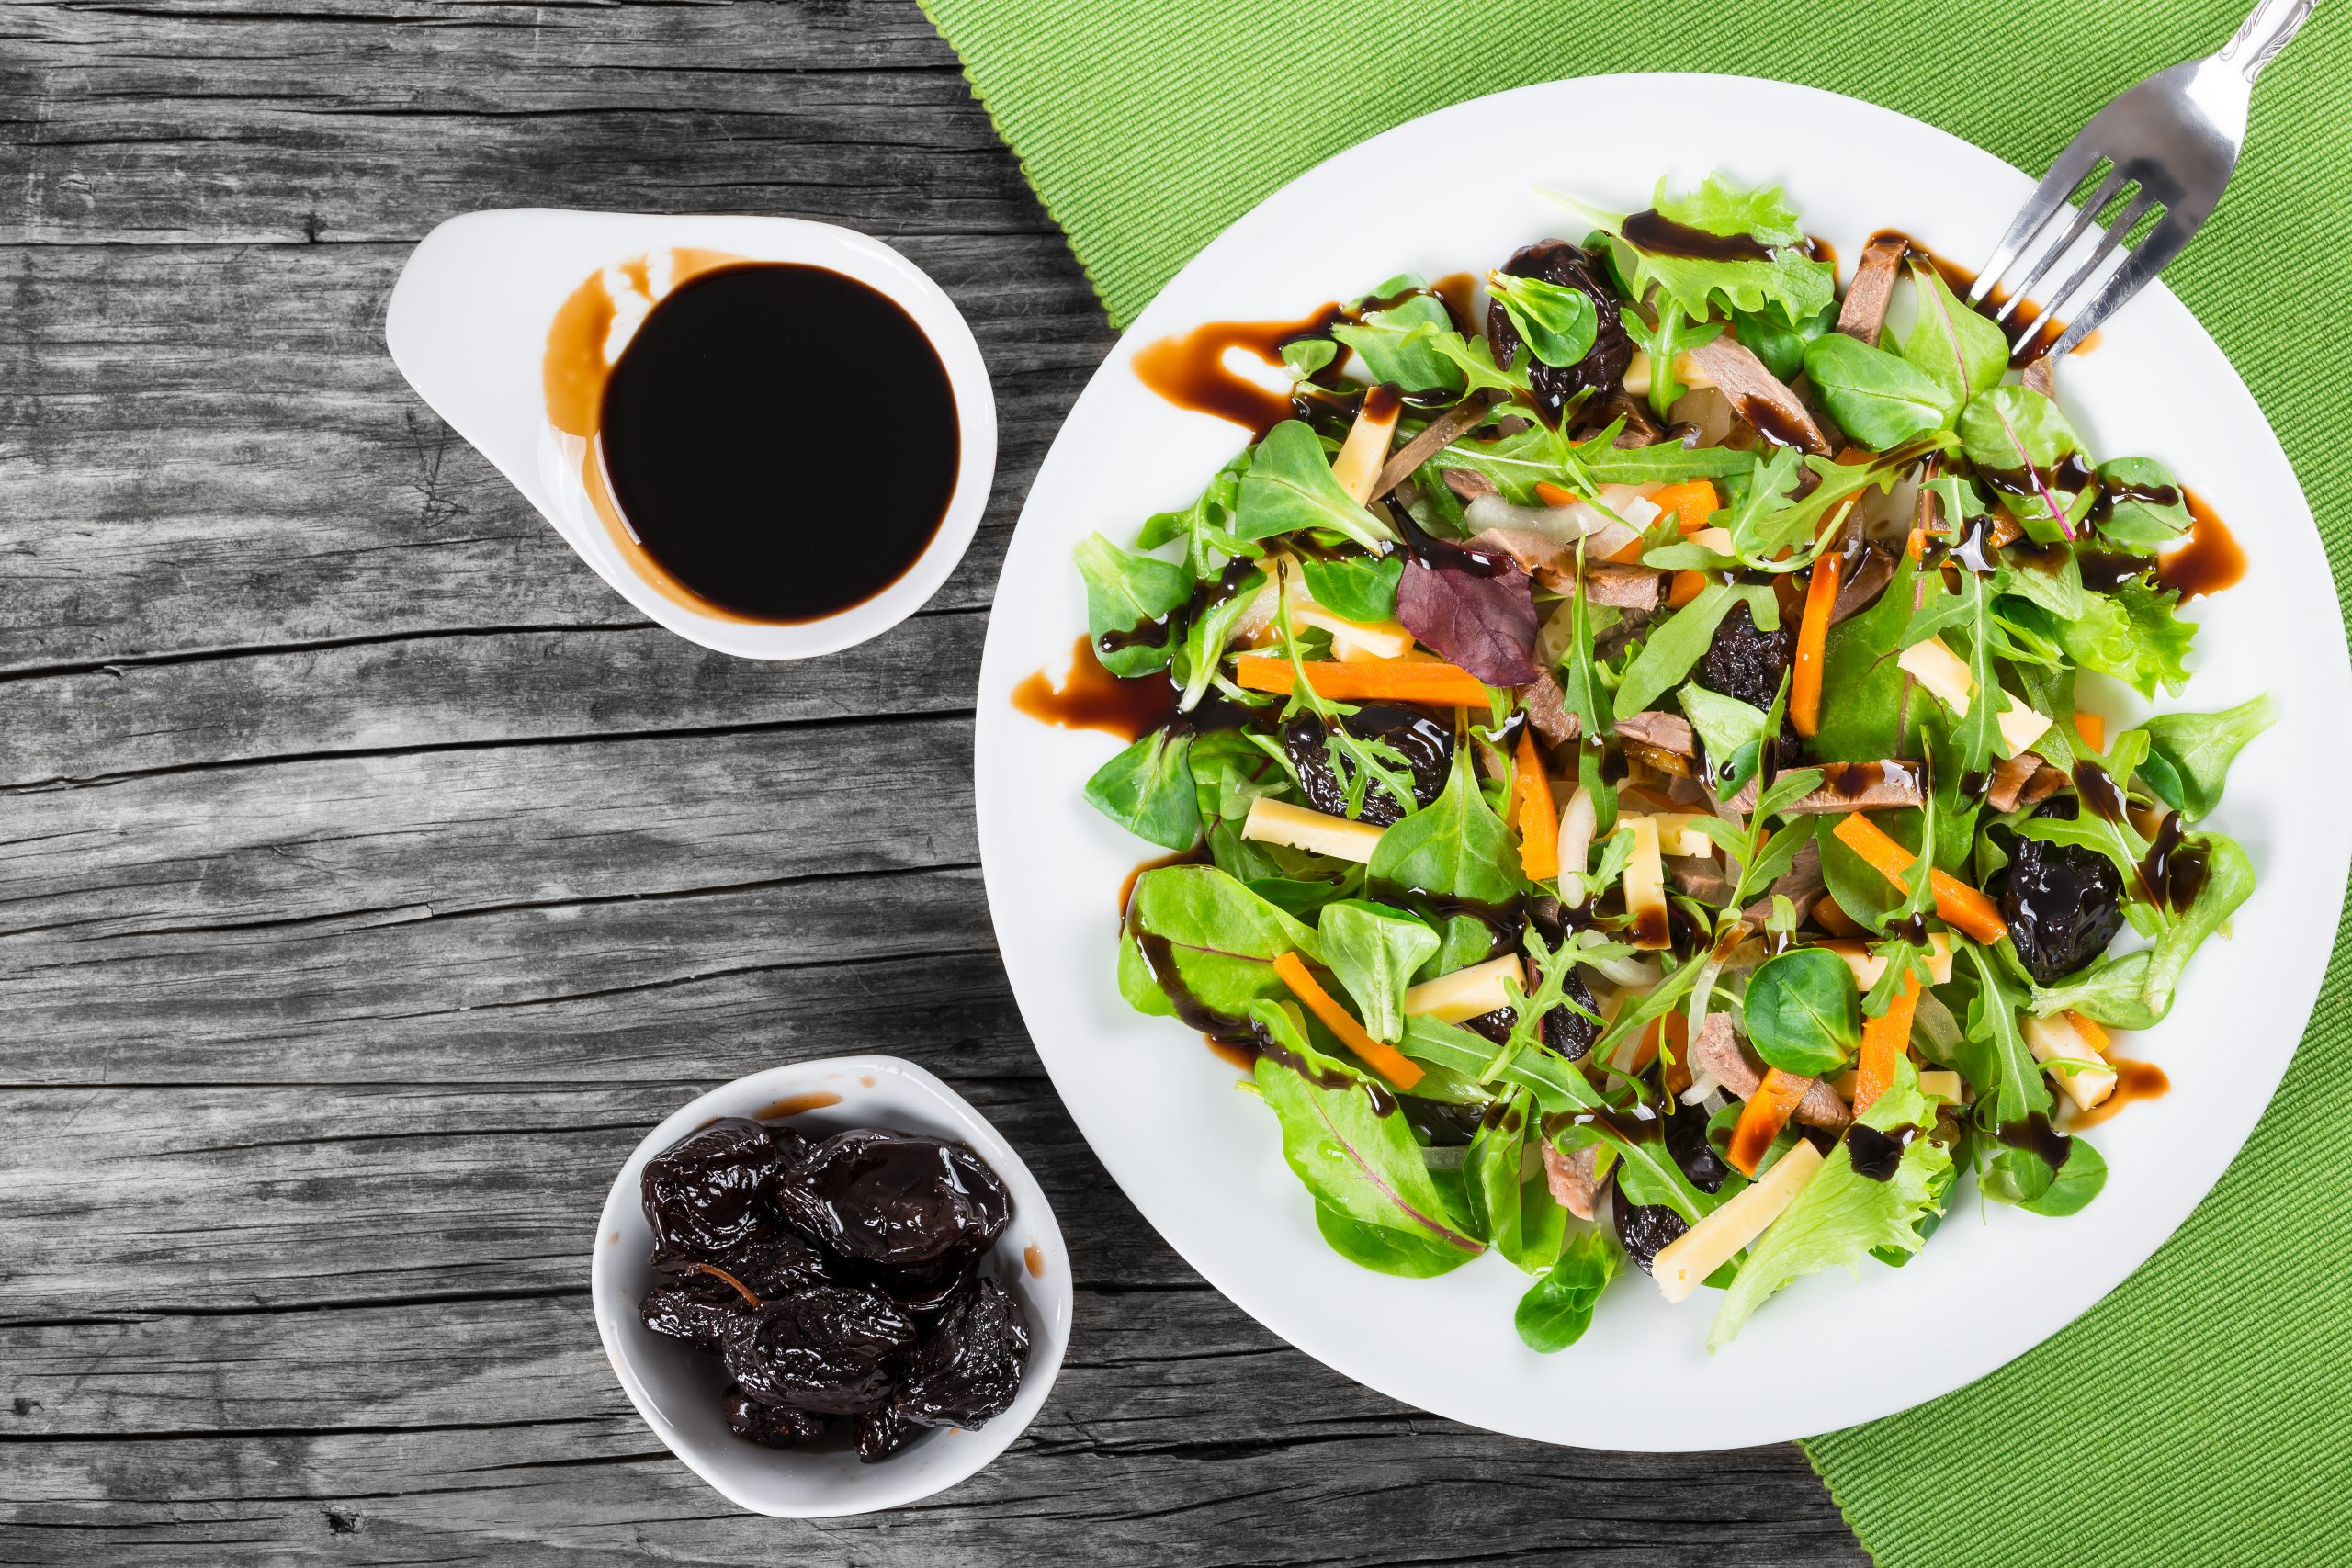 Wines and Gourmet Foods Center, Salad with Balsamic Vinaigrette